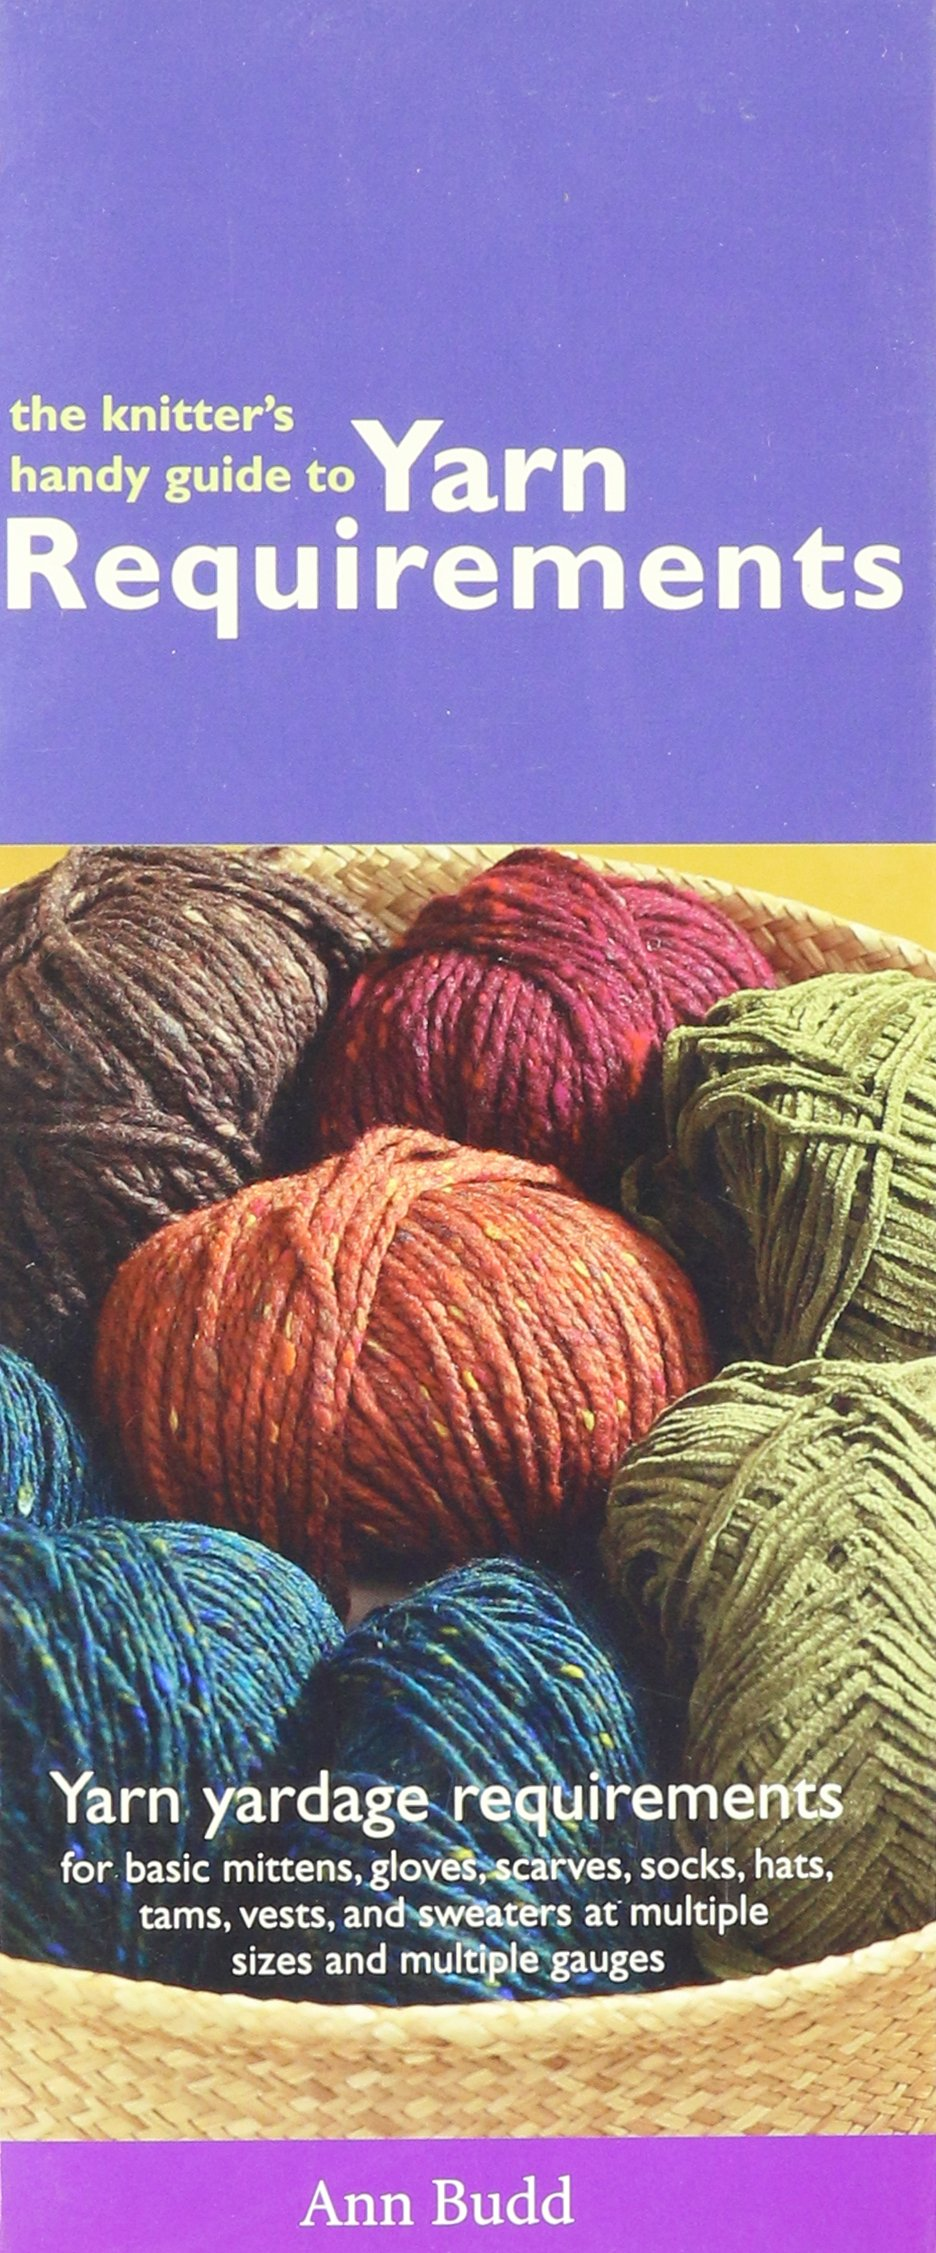 The Knitter's Handy Guide To Yarn Requirements